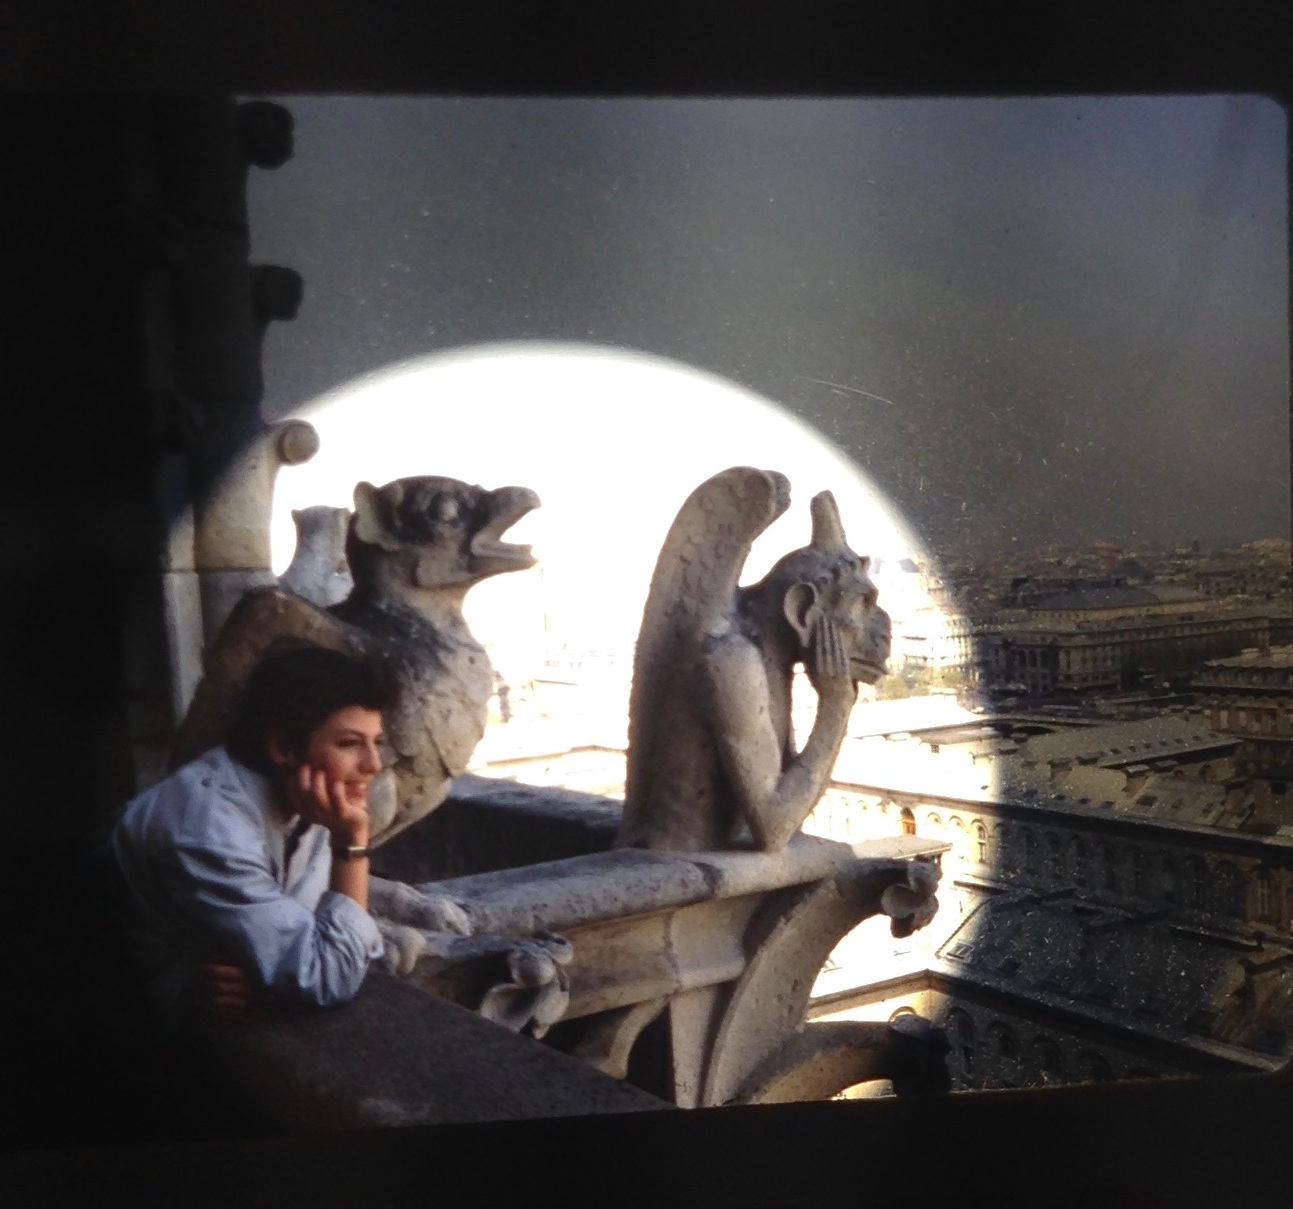 1985. Looking out from high atop Notre Dame Cathedral, my first visit to Paris. (This is from a 35mm slide exposed to a light bulb.)  I'm the one on the left. Lol.